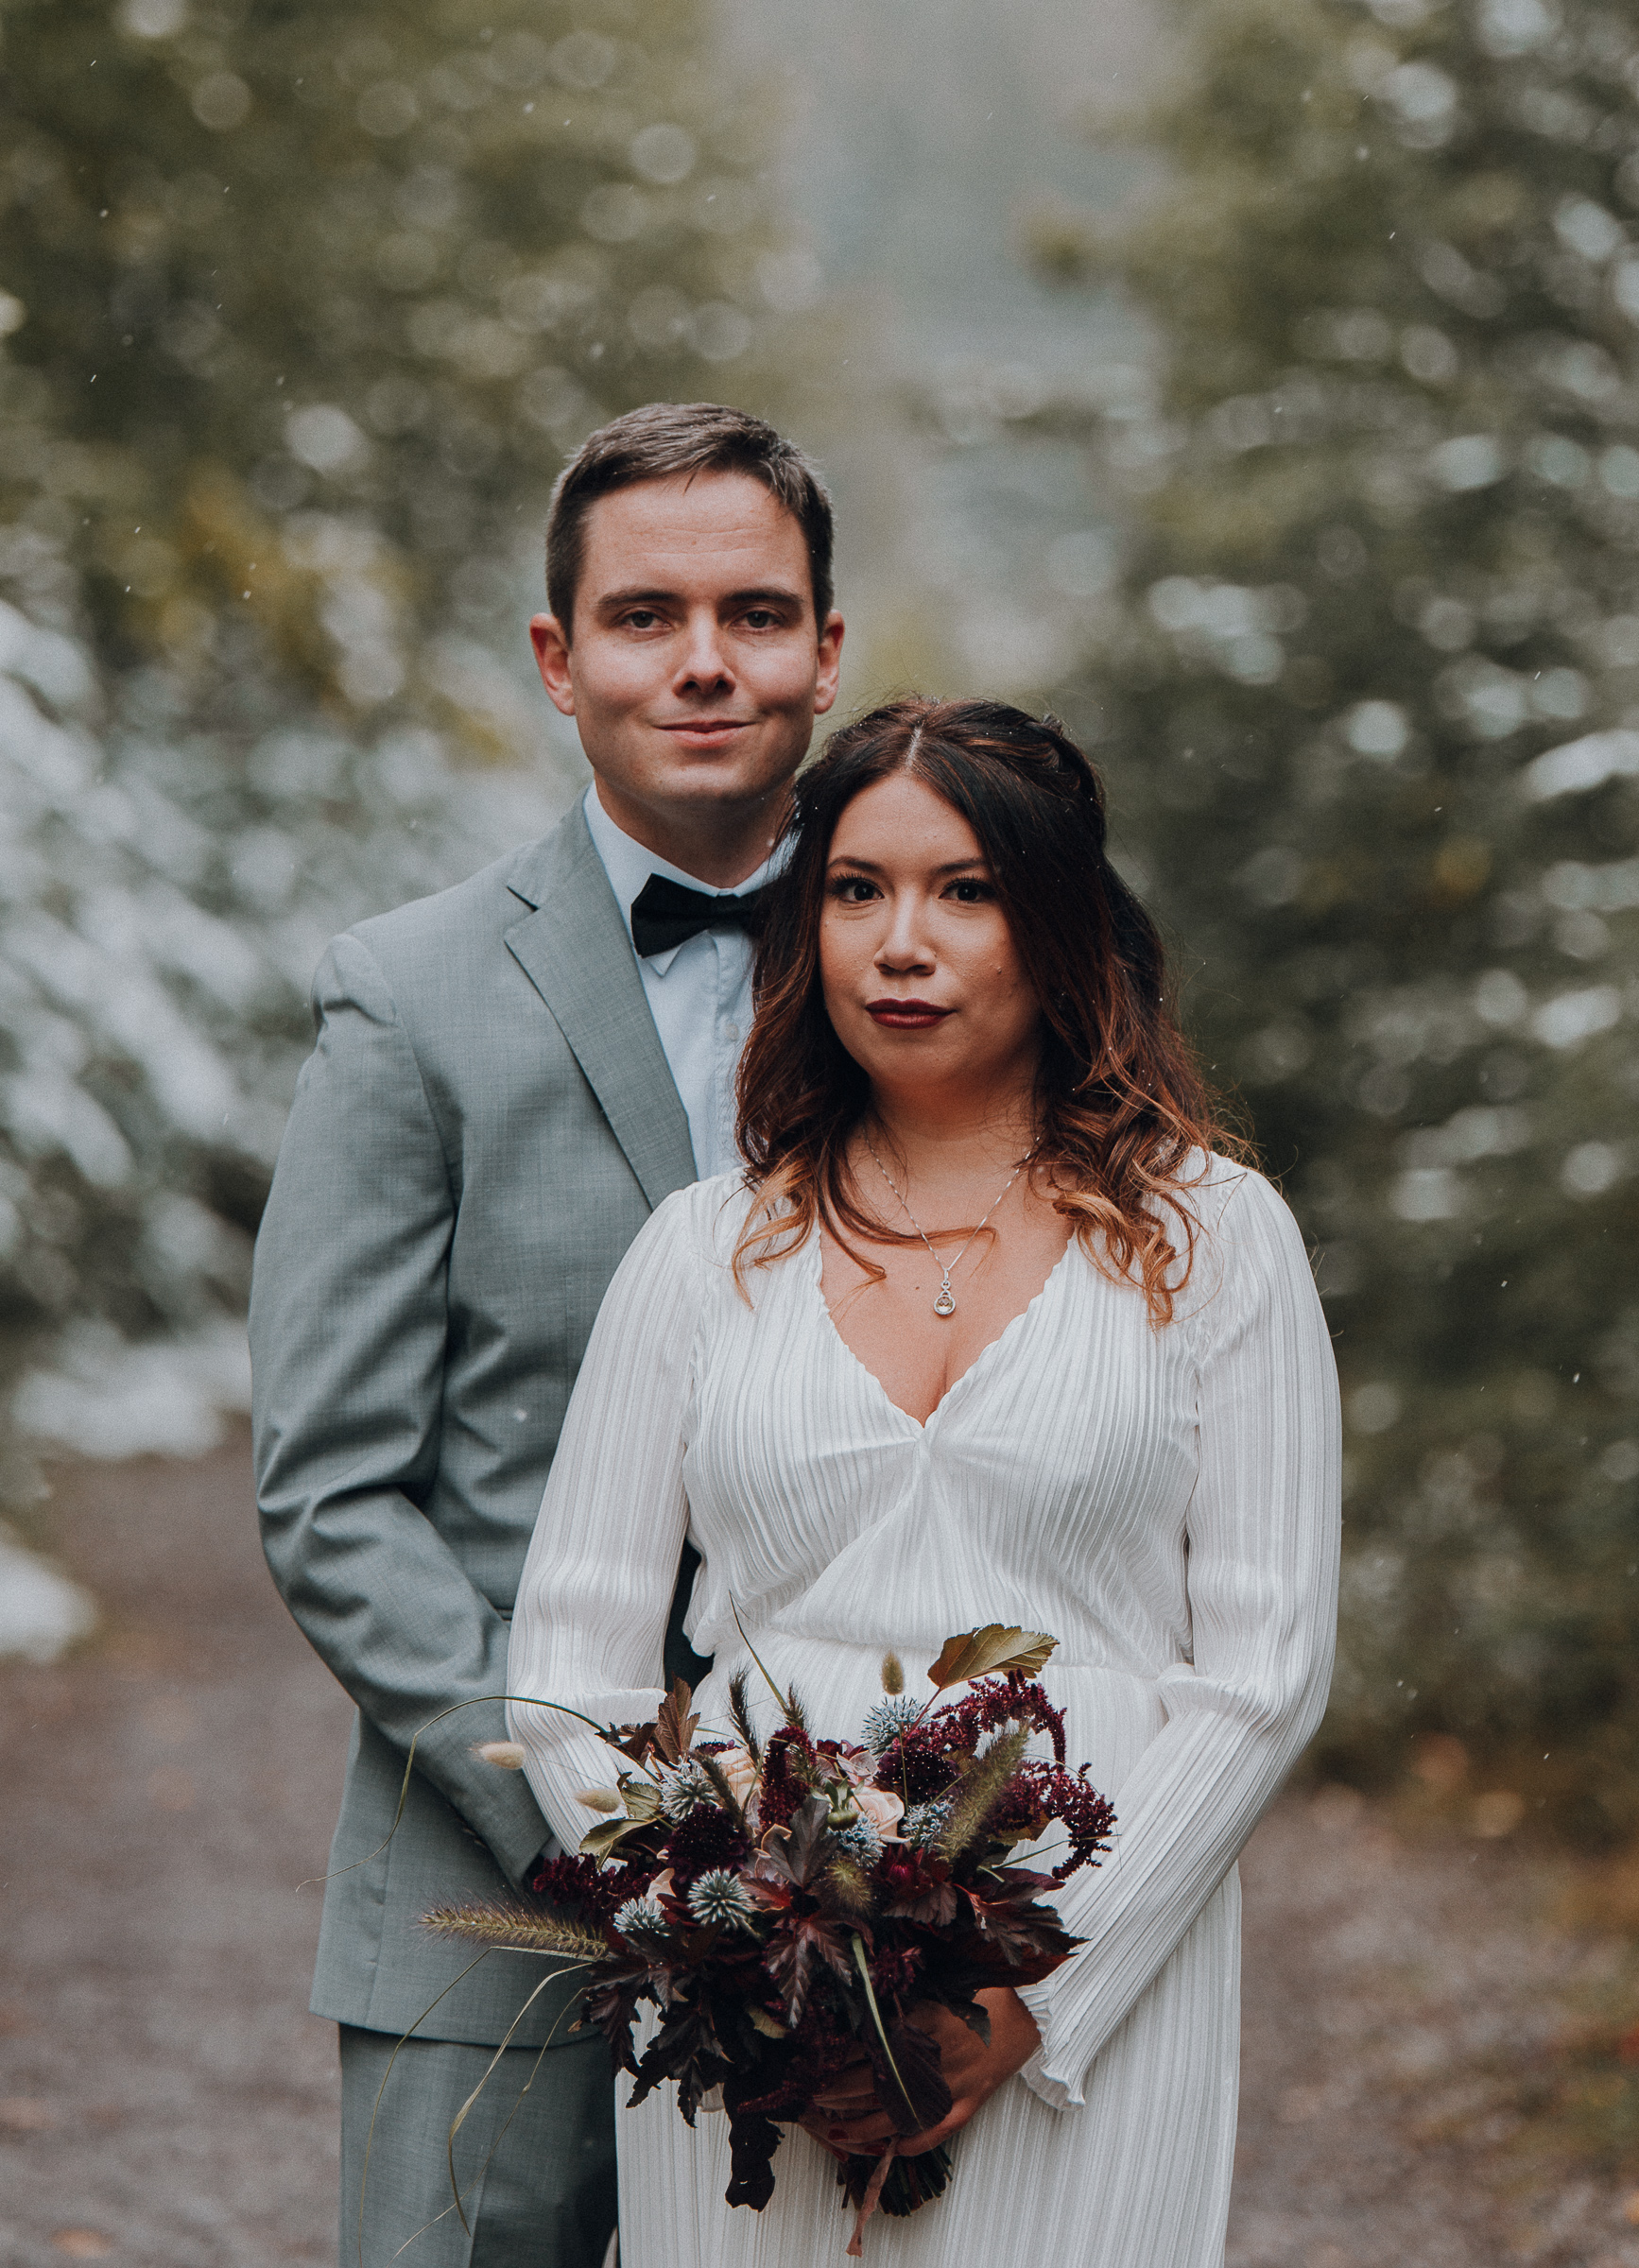 Phil & Steph's Mountain Wedding